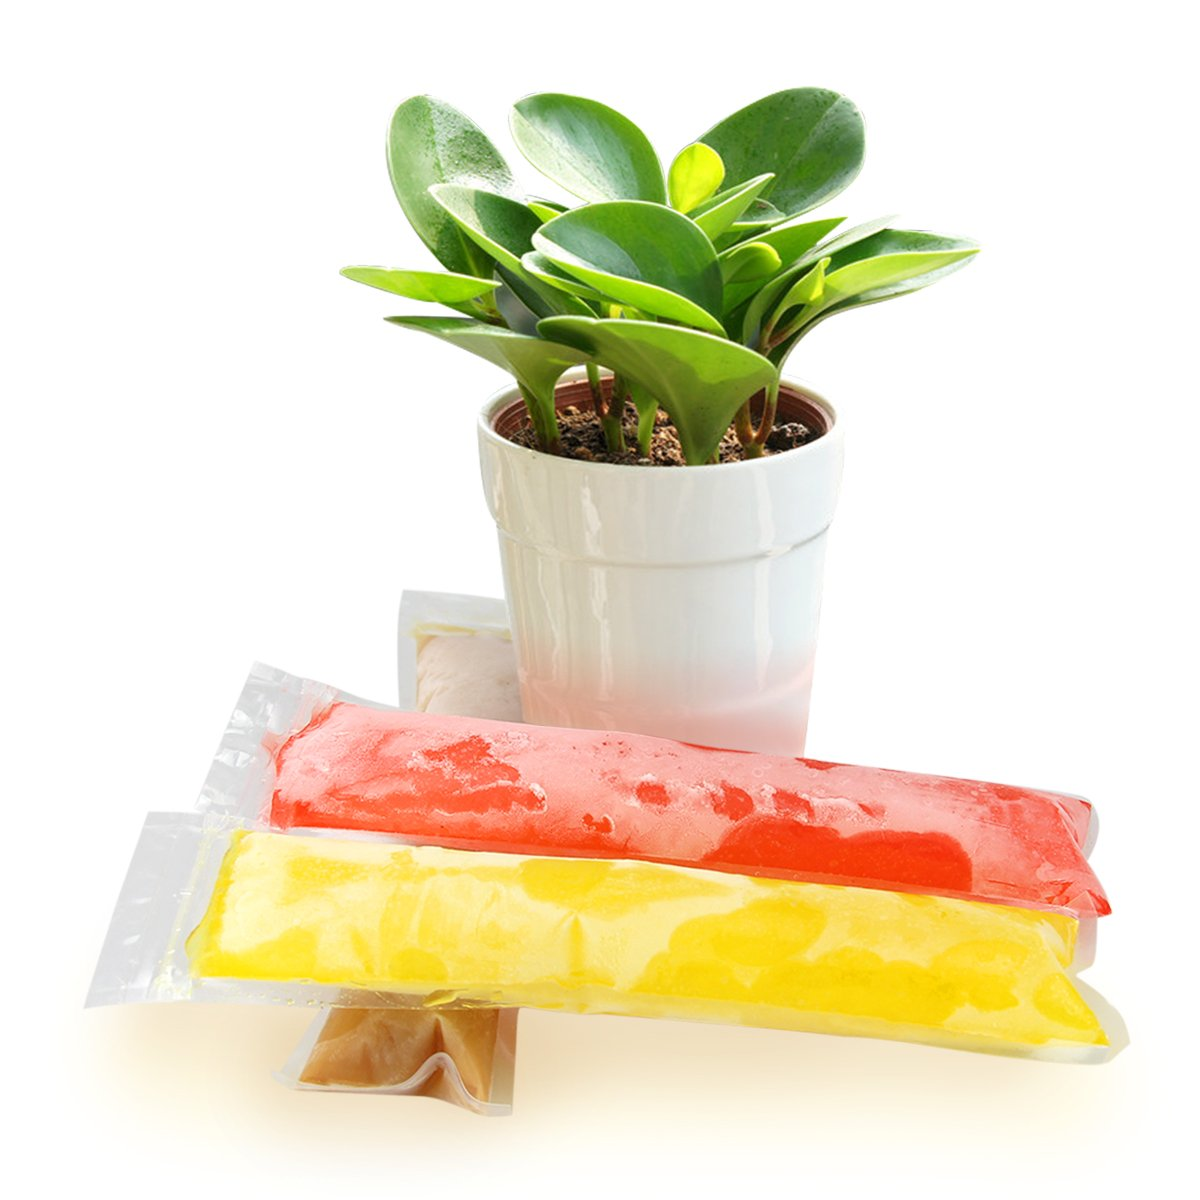 Ohomr 150pcs Popsicle Mold Bags with 5 Free Popsicle Holder and Folding Funnel for Freezing DIY Ice Candy Fruit Juice Snack Yogurt Pop Pouch